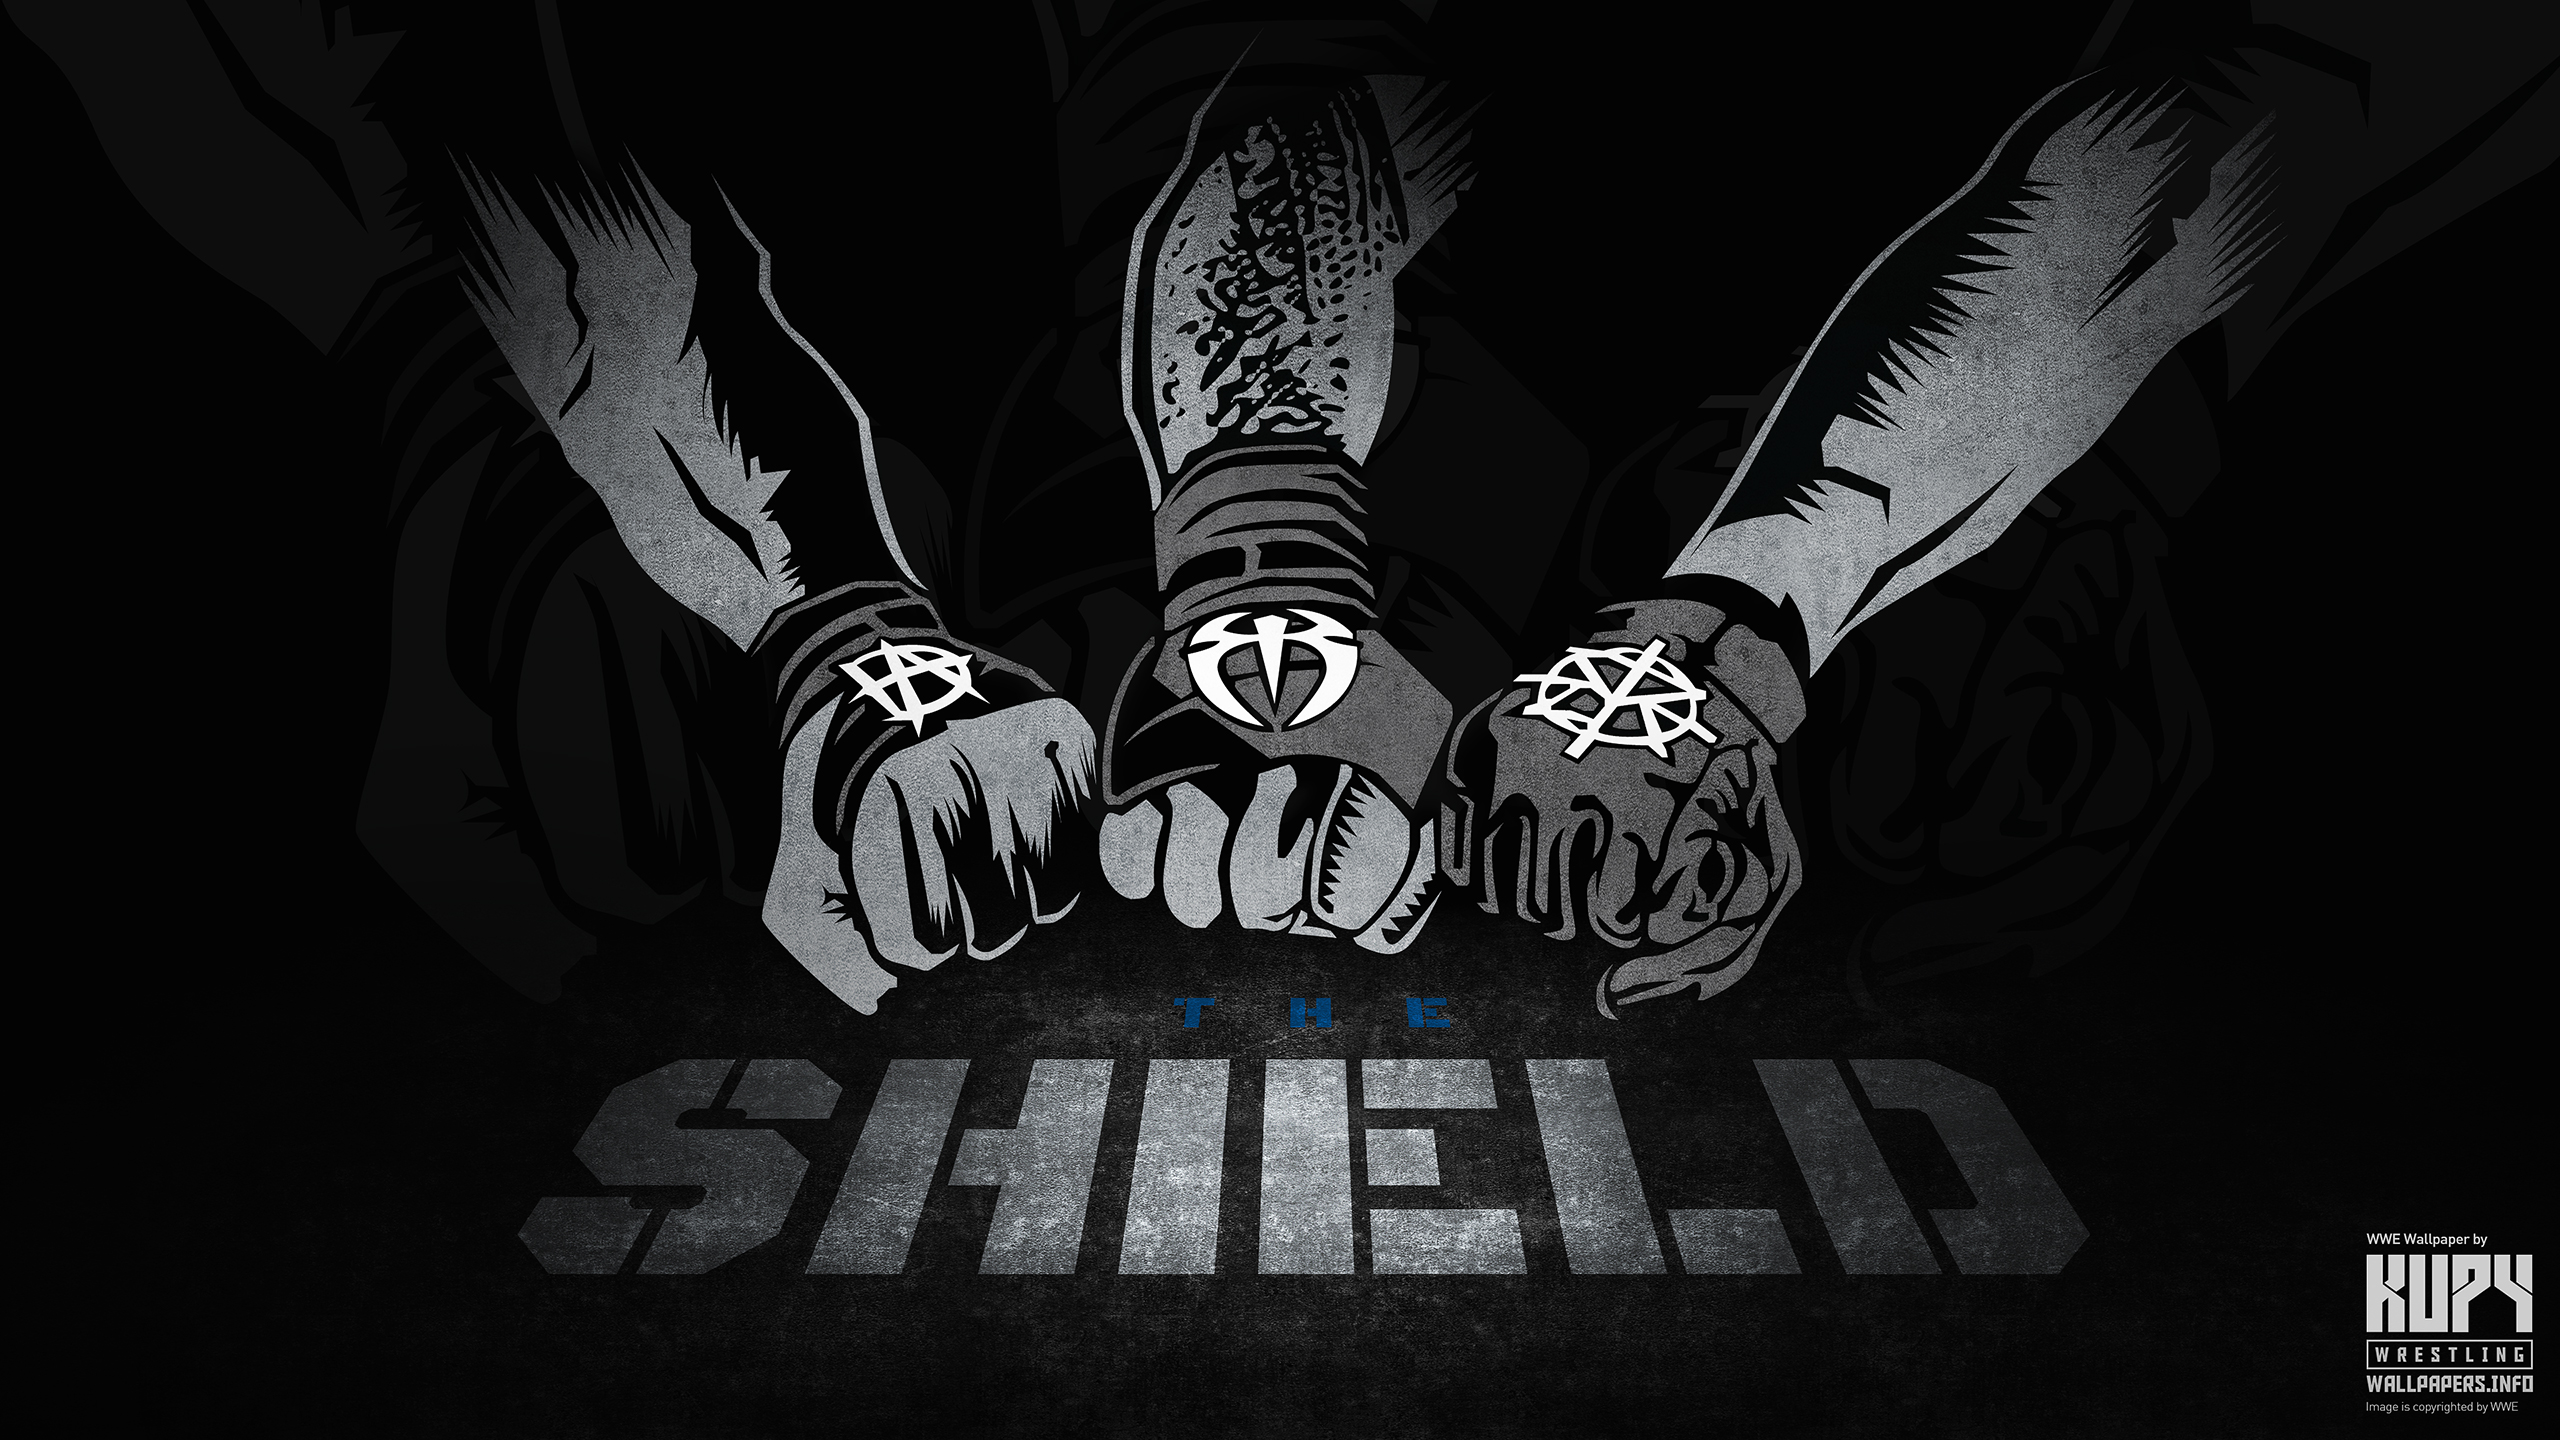 New The Shield Reunited Wallpaper Kupy Wrestling Wallpapers The